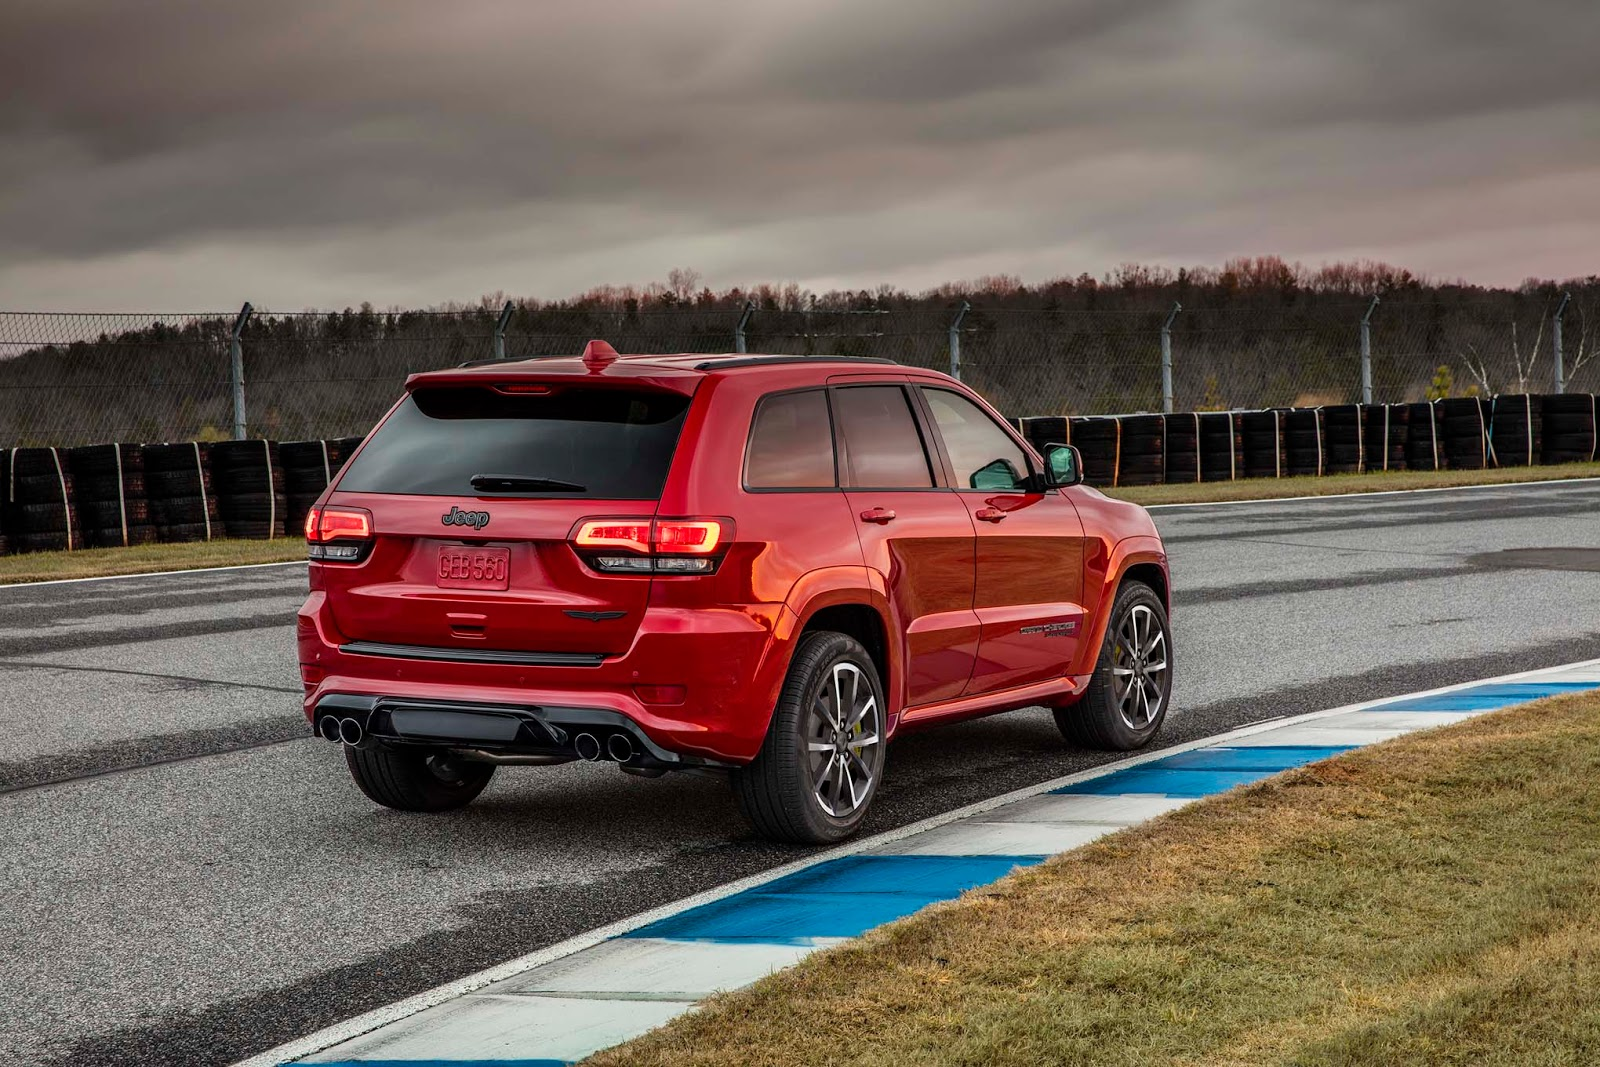 jeep gifts the 2018 grand cherokee trackhawk with 707 hp hellcat v8 autoevolution. Black Bedroom Furniture Sets. Home Design Ideas